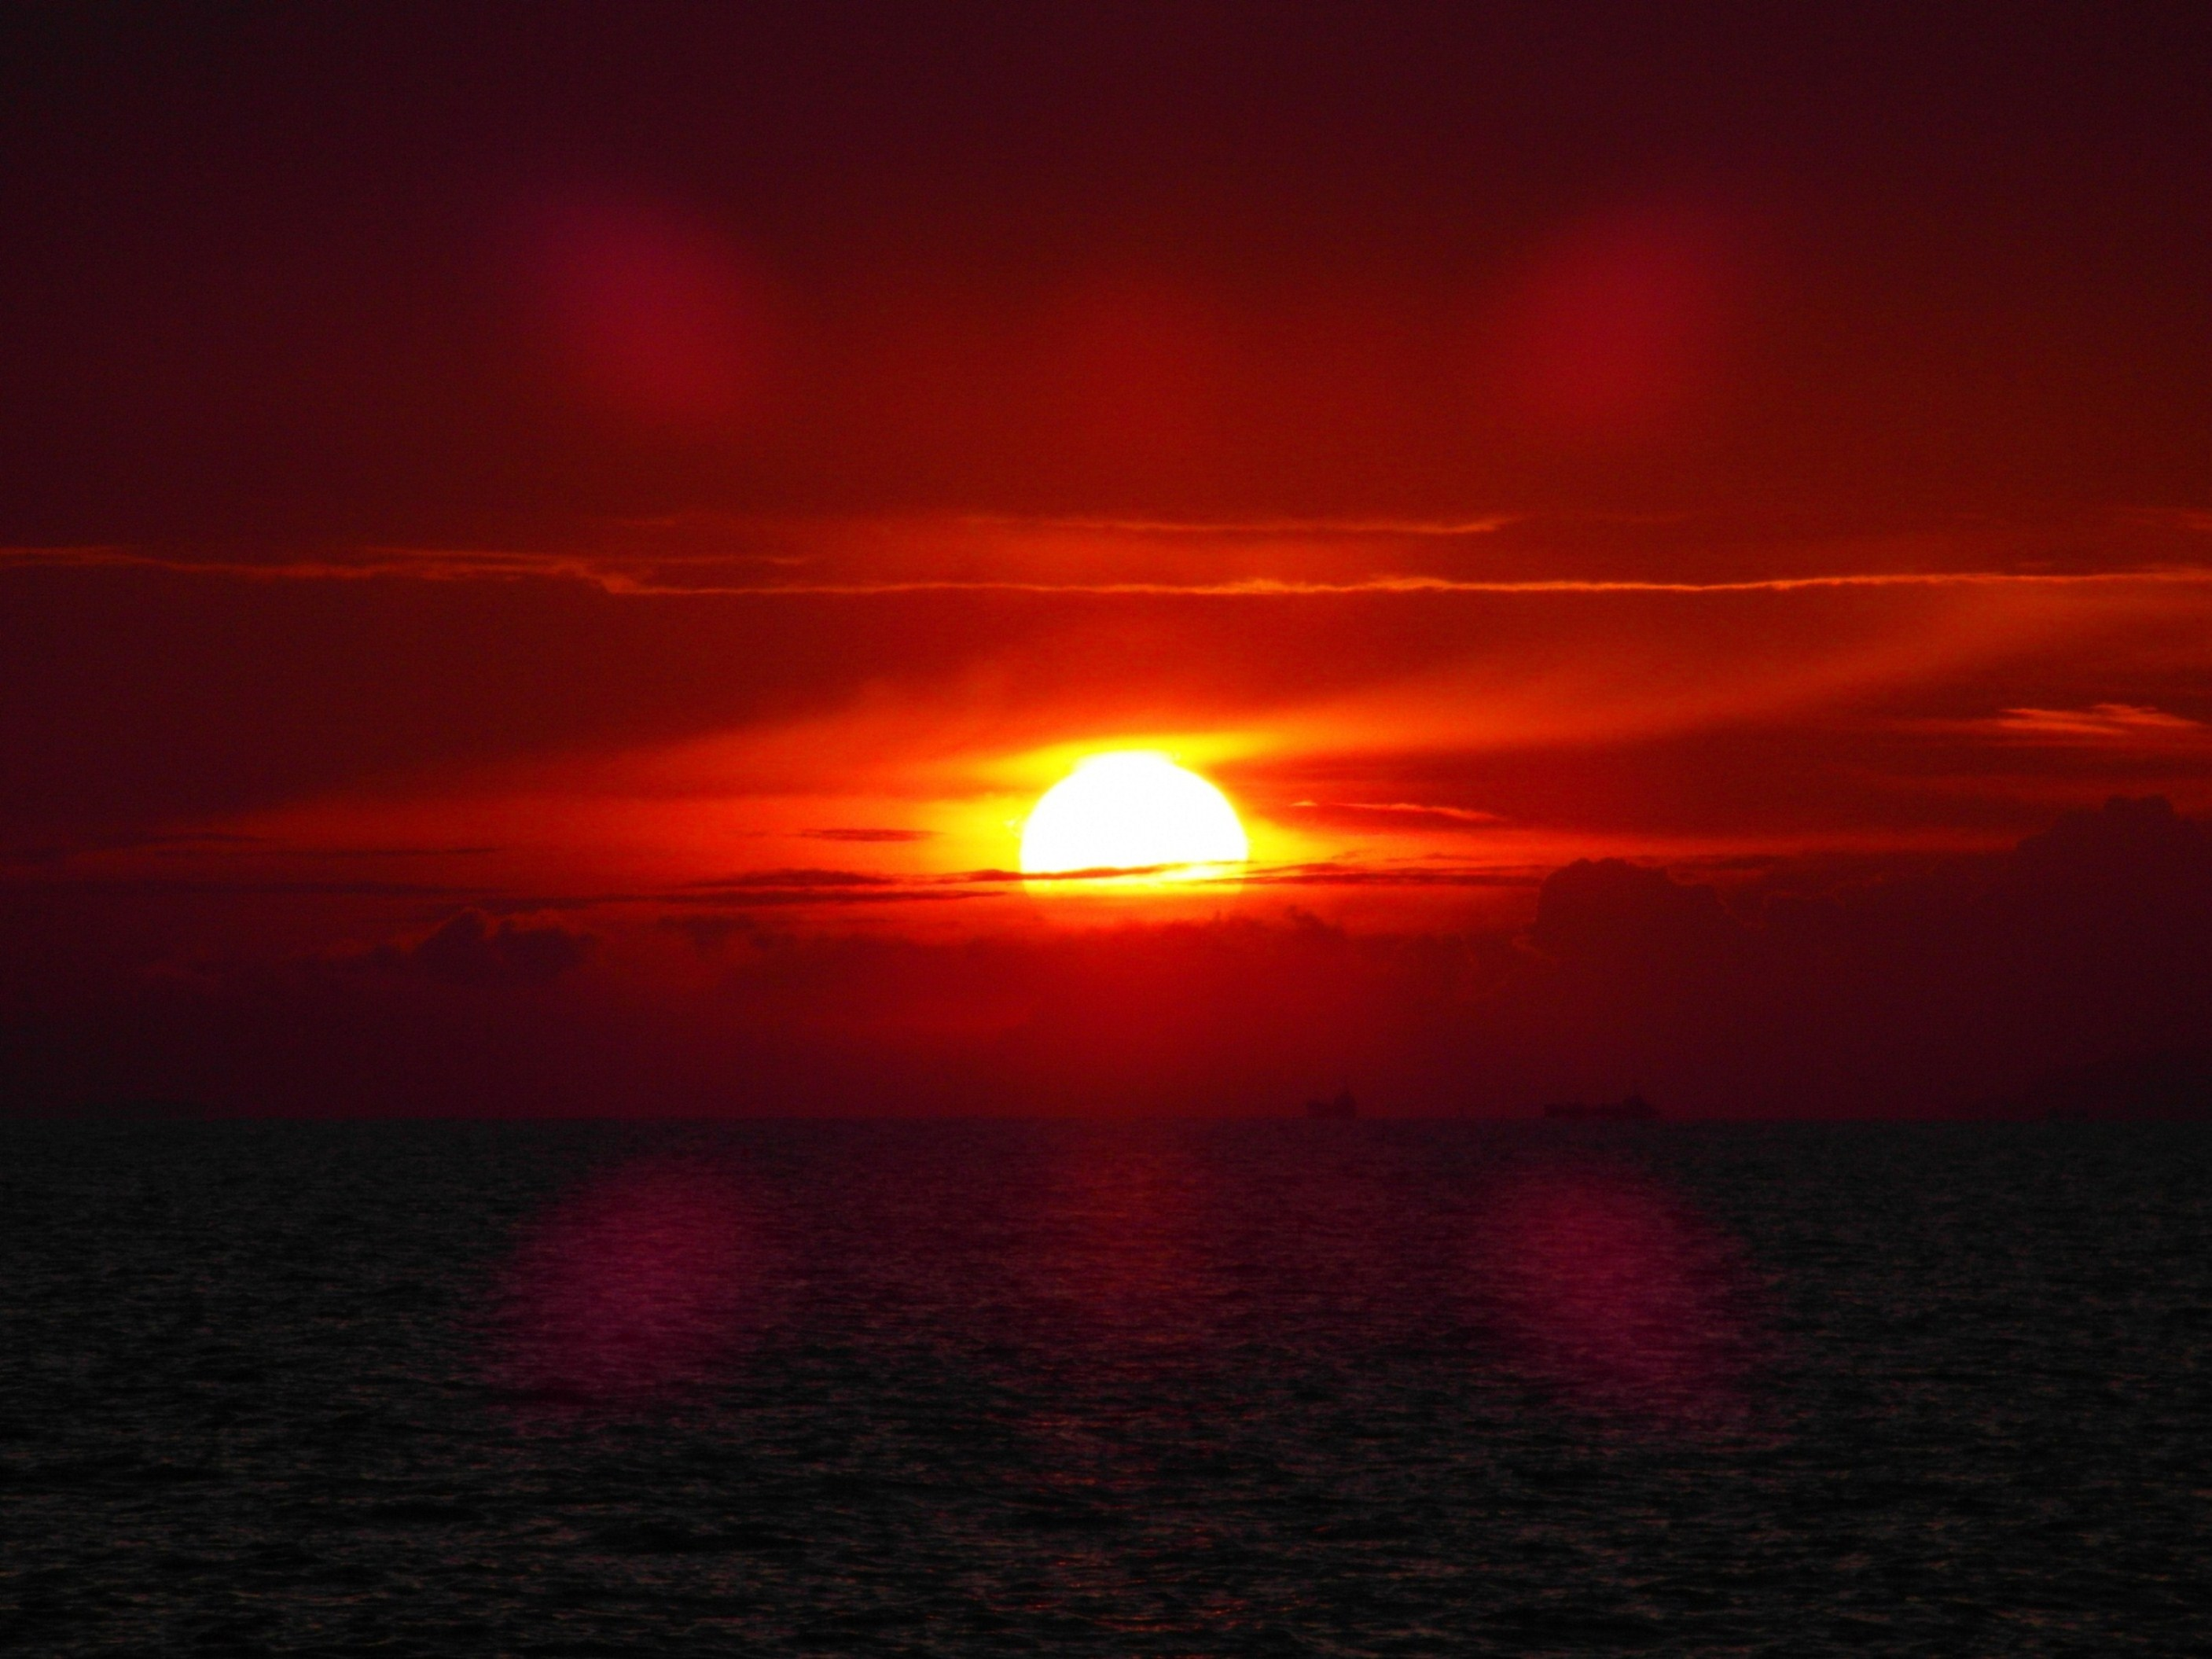 Red Sunset, Wallpaper, Sea, Vacation, The, HQ Photo